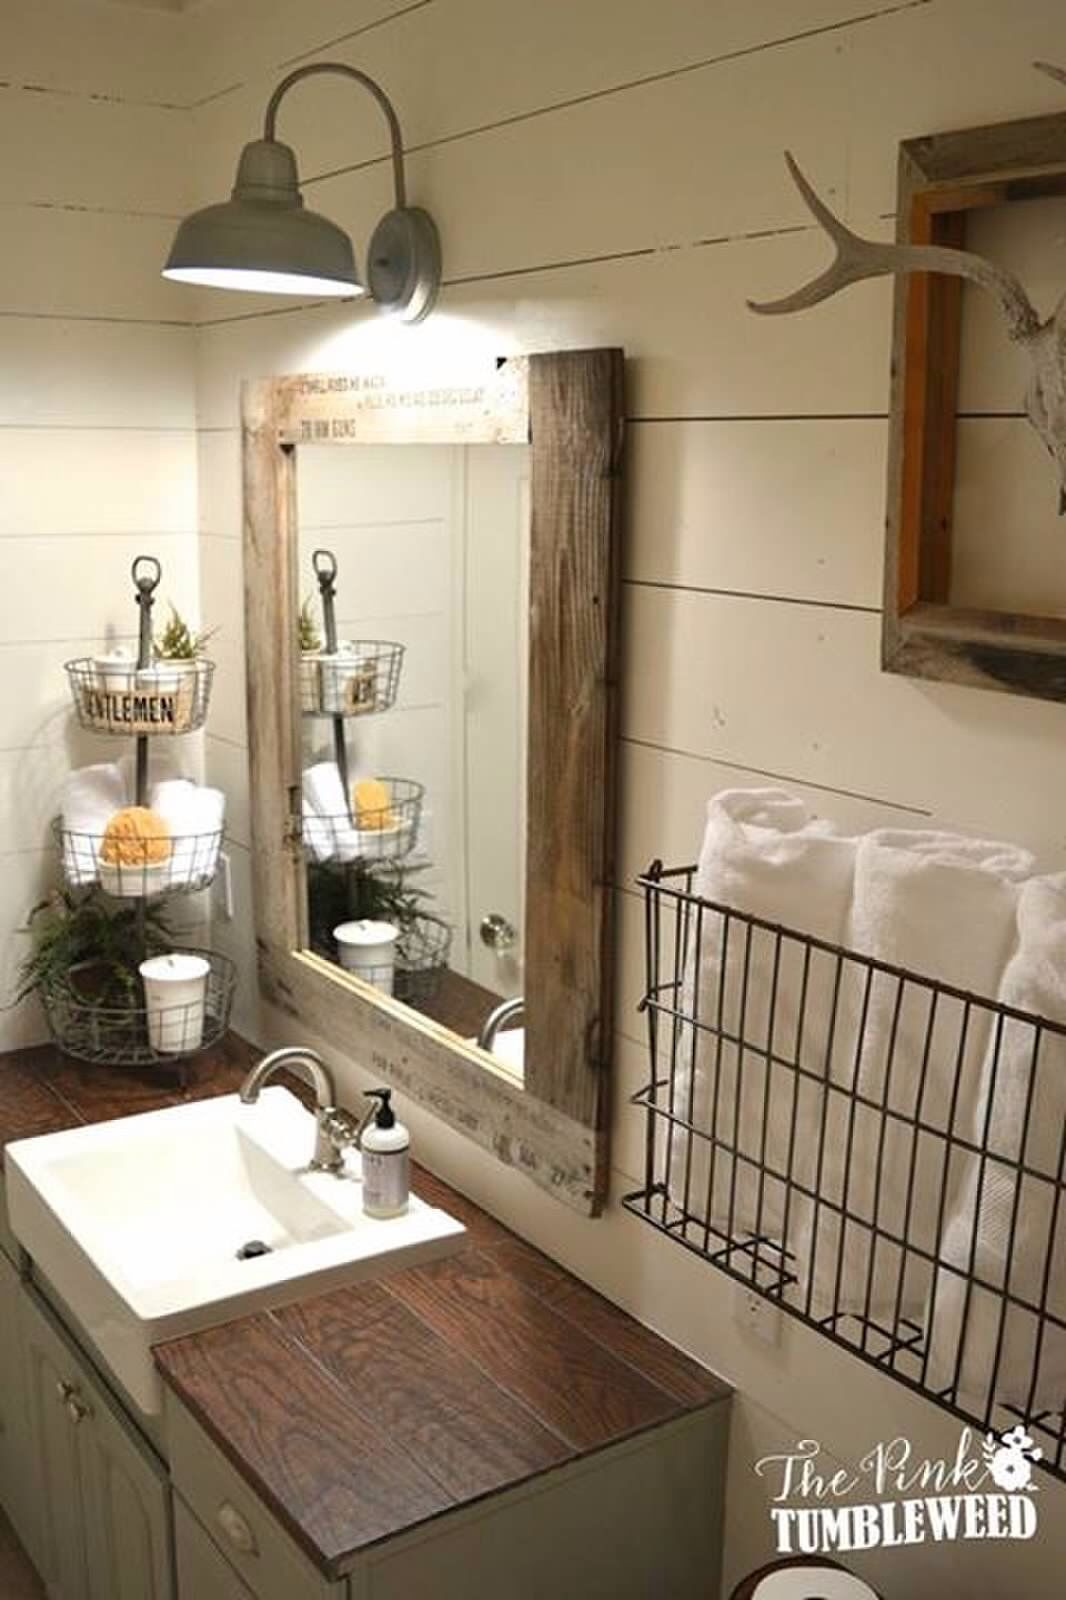 I like the mirror and the light fixture bathroom storage in